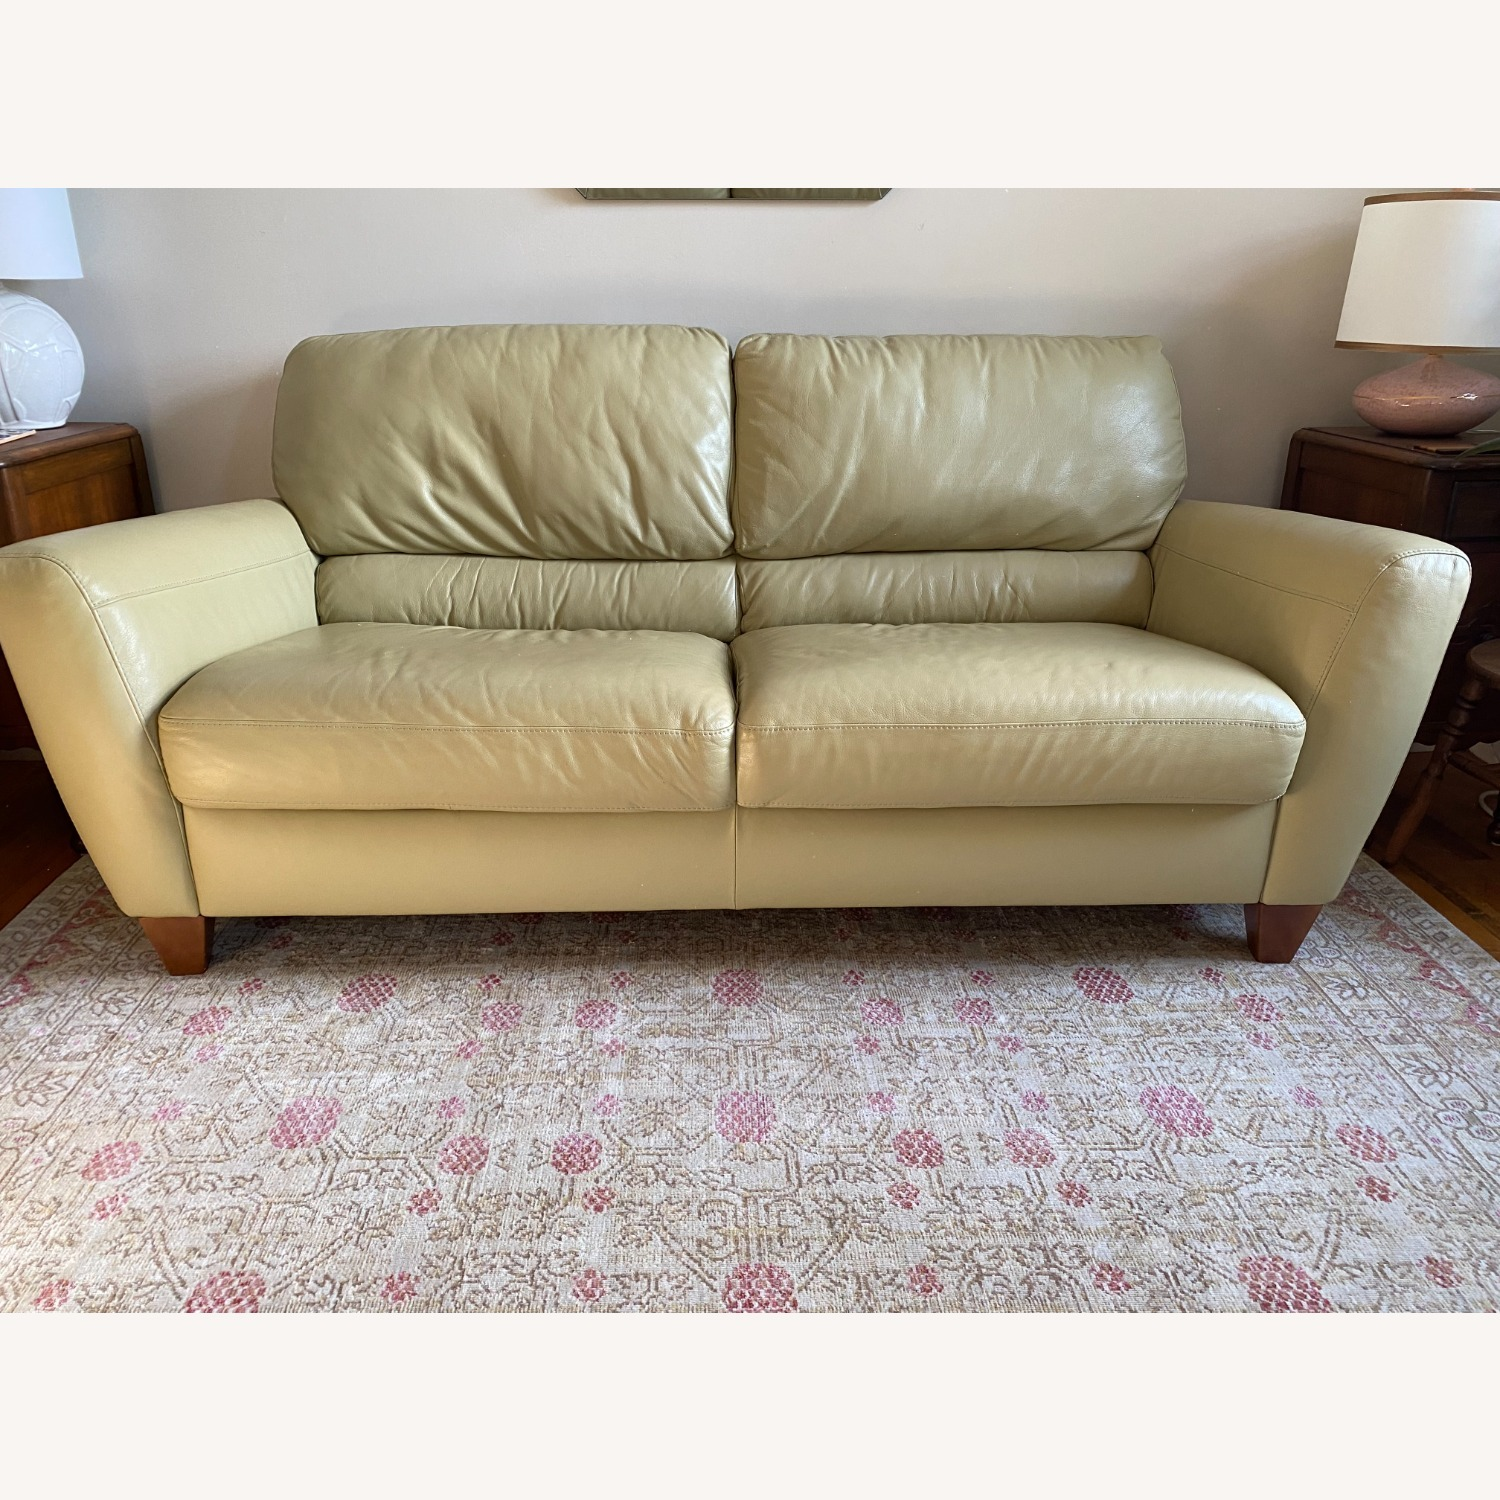 Macy's light Green Leather Couch - image-1